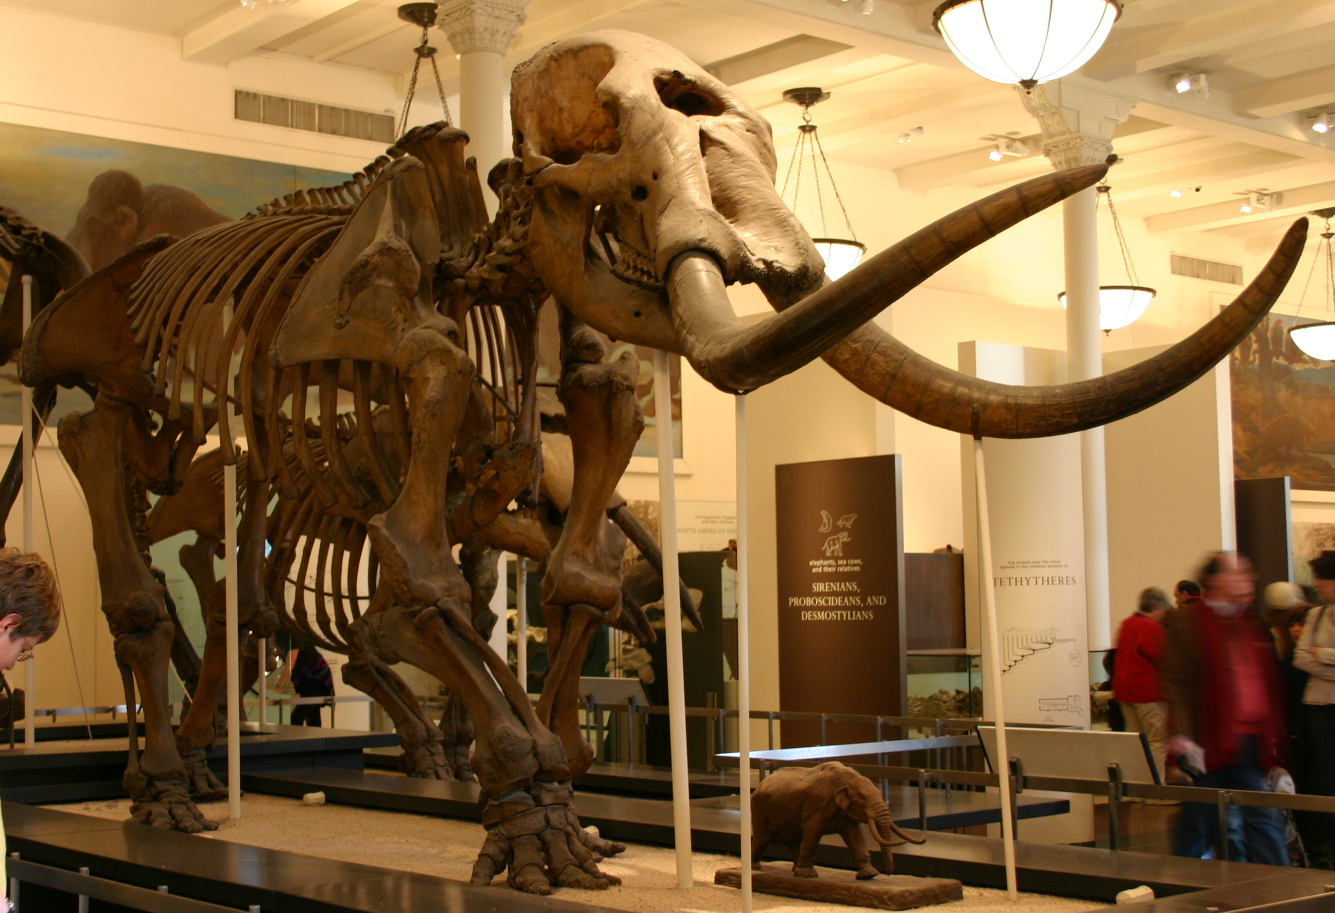 This mammoth is one of many displays at the Warren Anatomical Museum